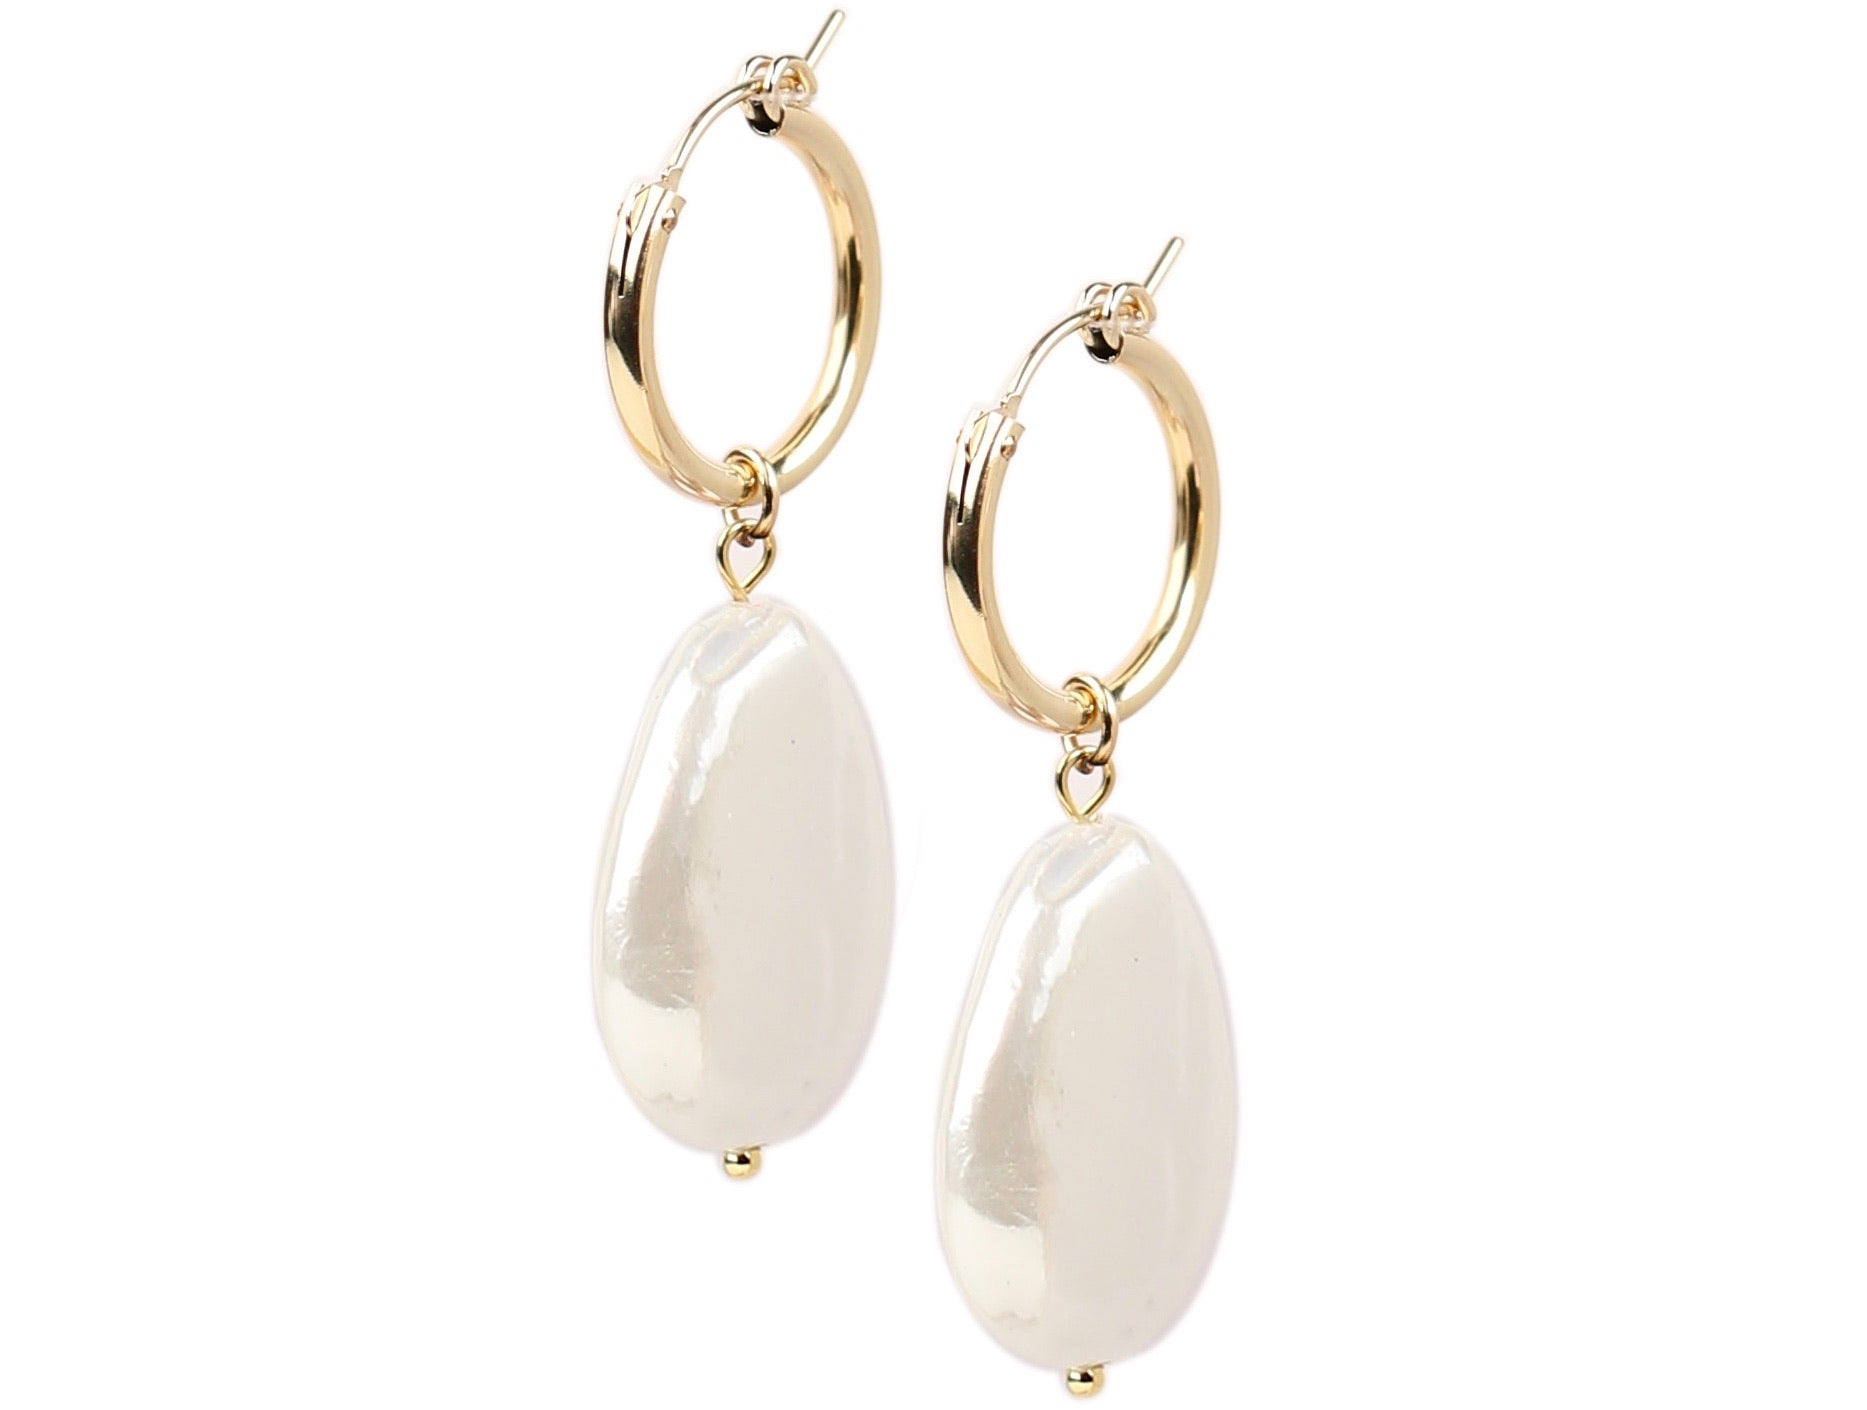 Galen Earrings